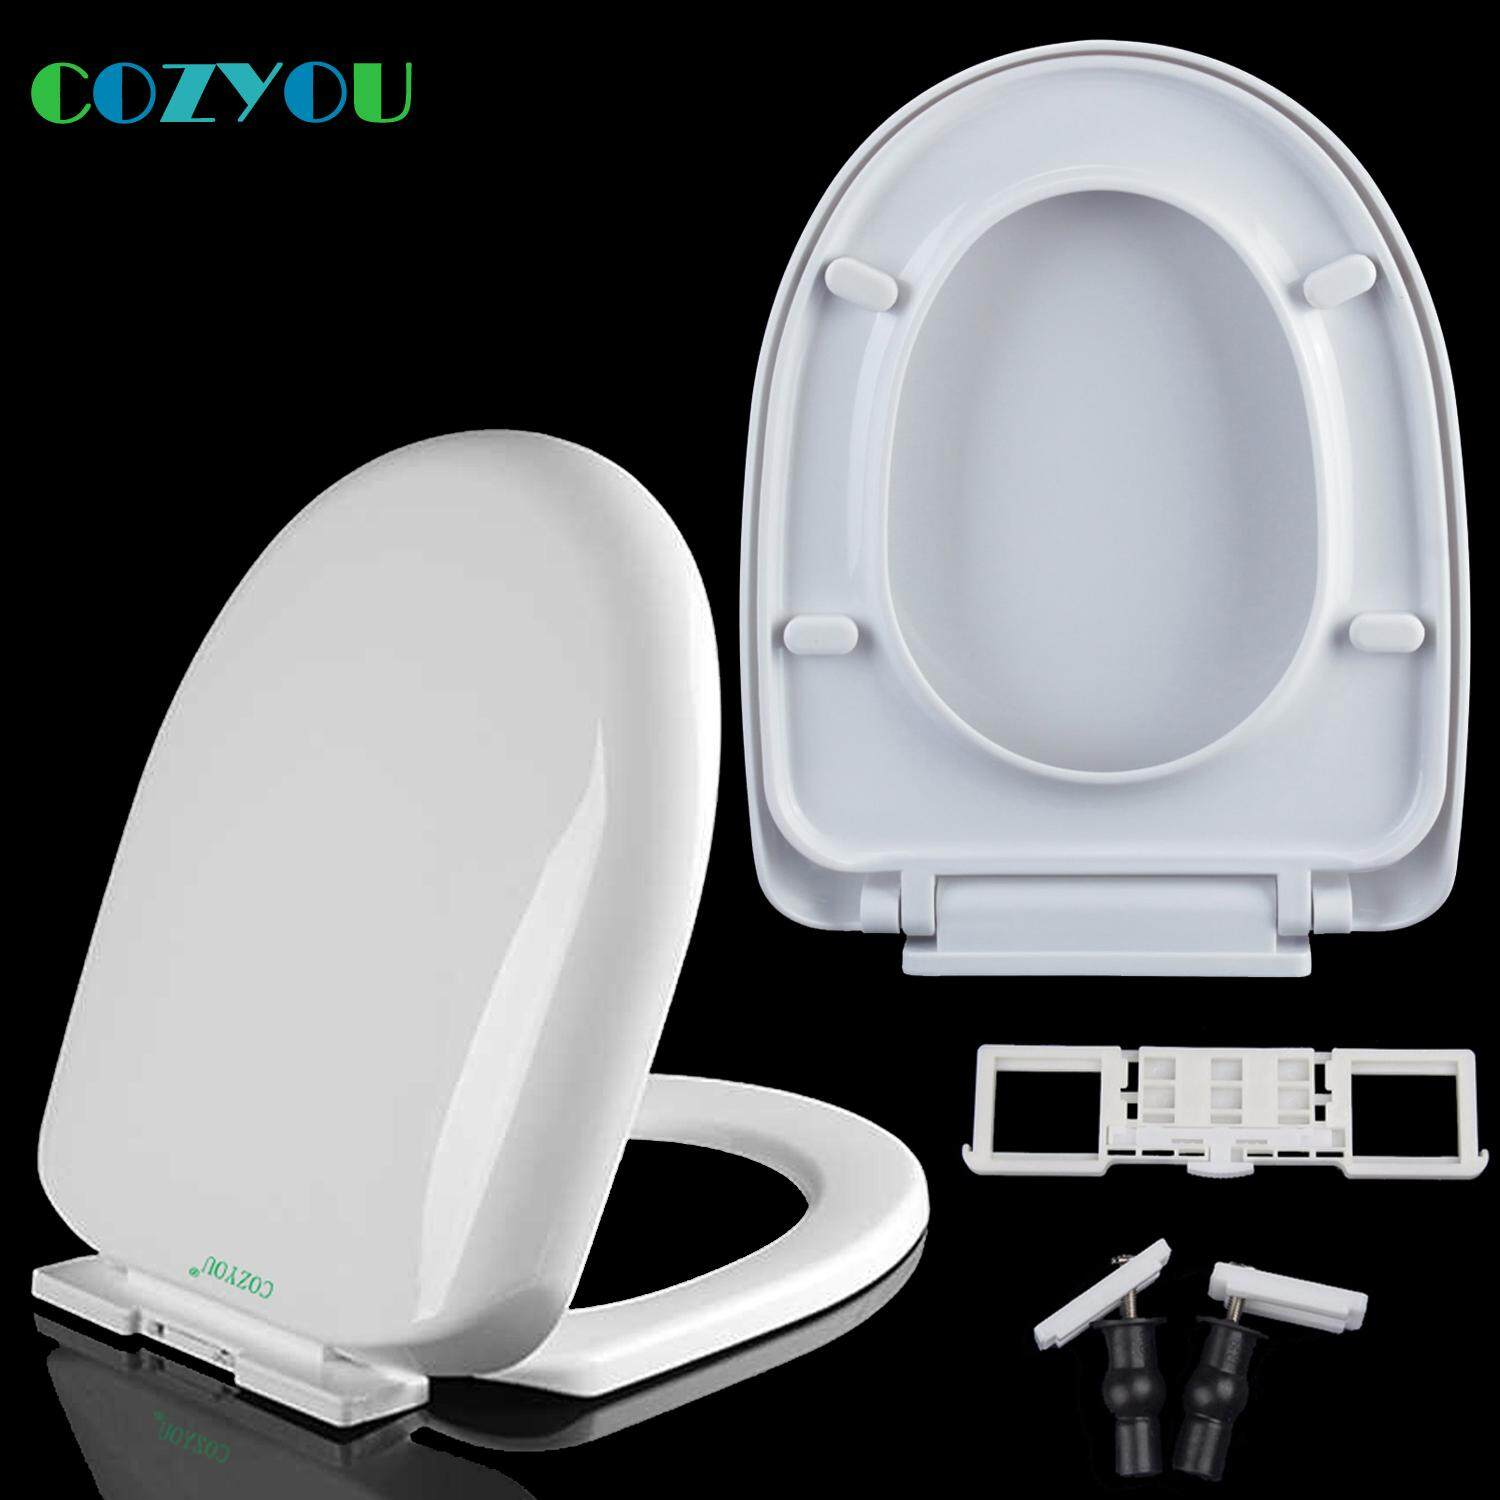 COZYOU PP toilet seat U shape D style Slow close Quick-Release  Length: 410mm to 435mm, Width: 335mm to 345mm  Easy Clean toilet lid GBP17251PU